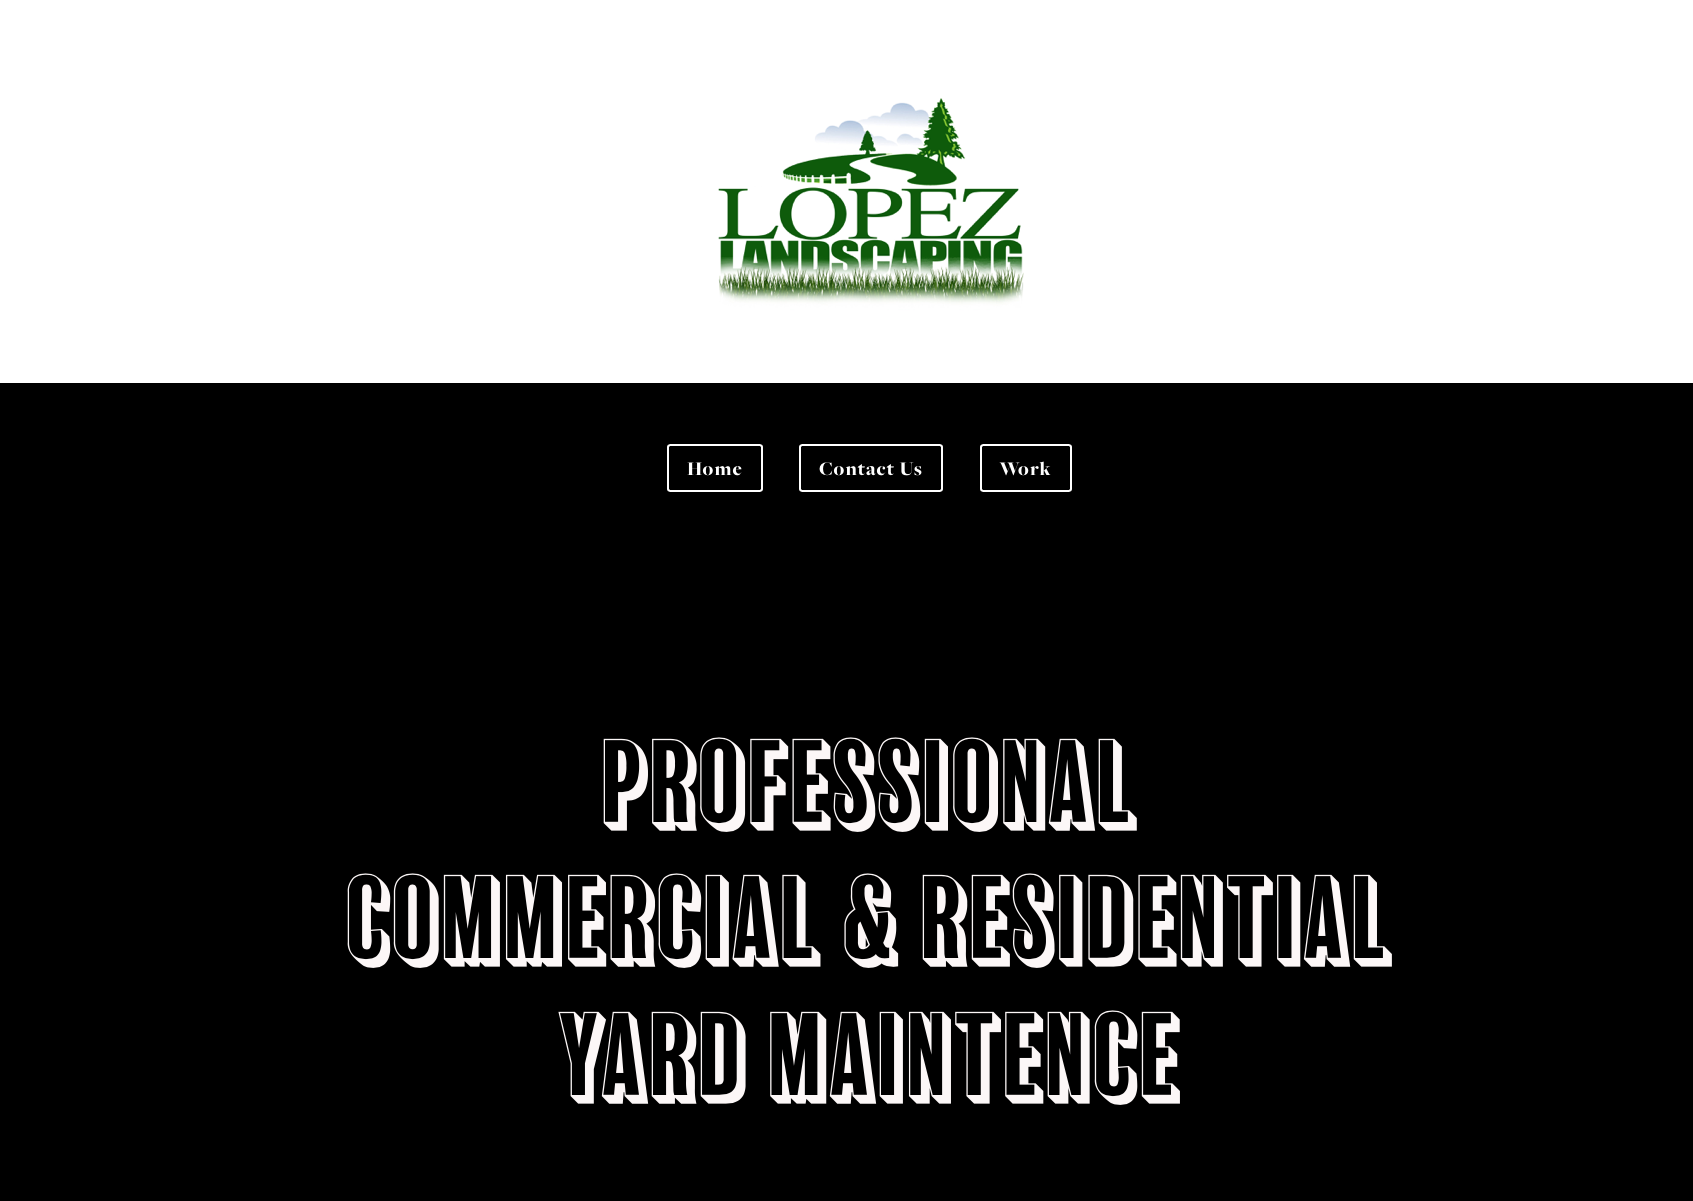 Lopez Landscaping - Landscaping Business in Brementon, WA